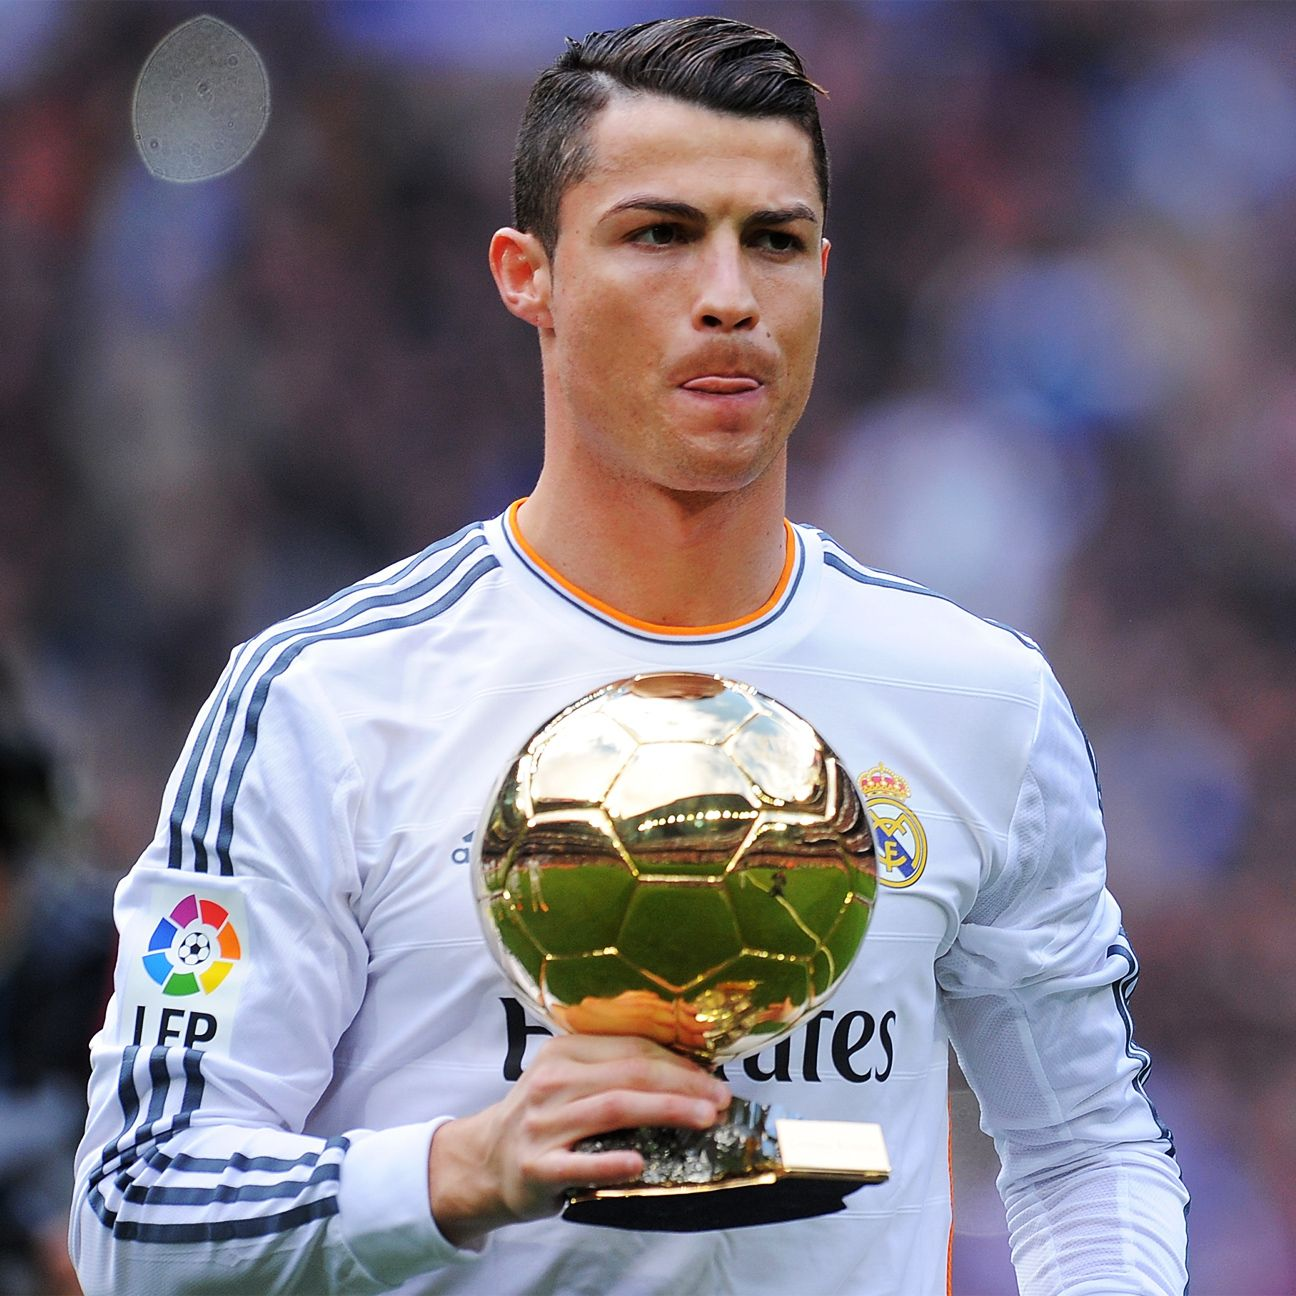 Cristiano Ronaldo has his sight set on a third Ballon d'Or.